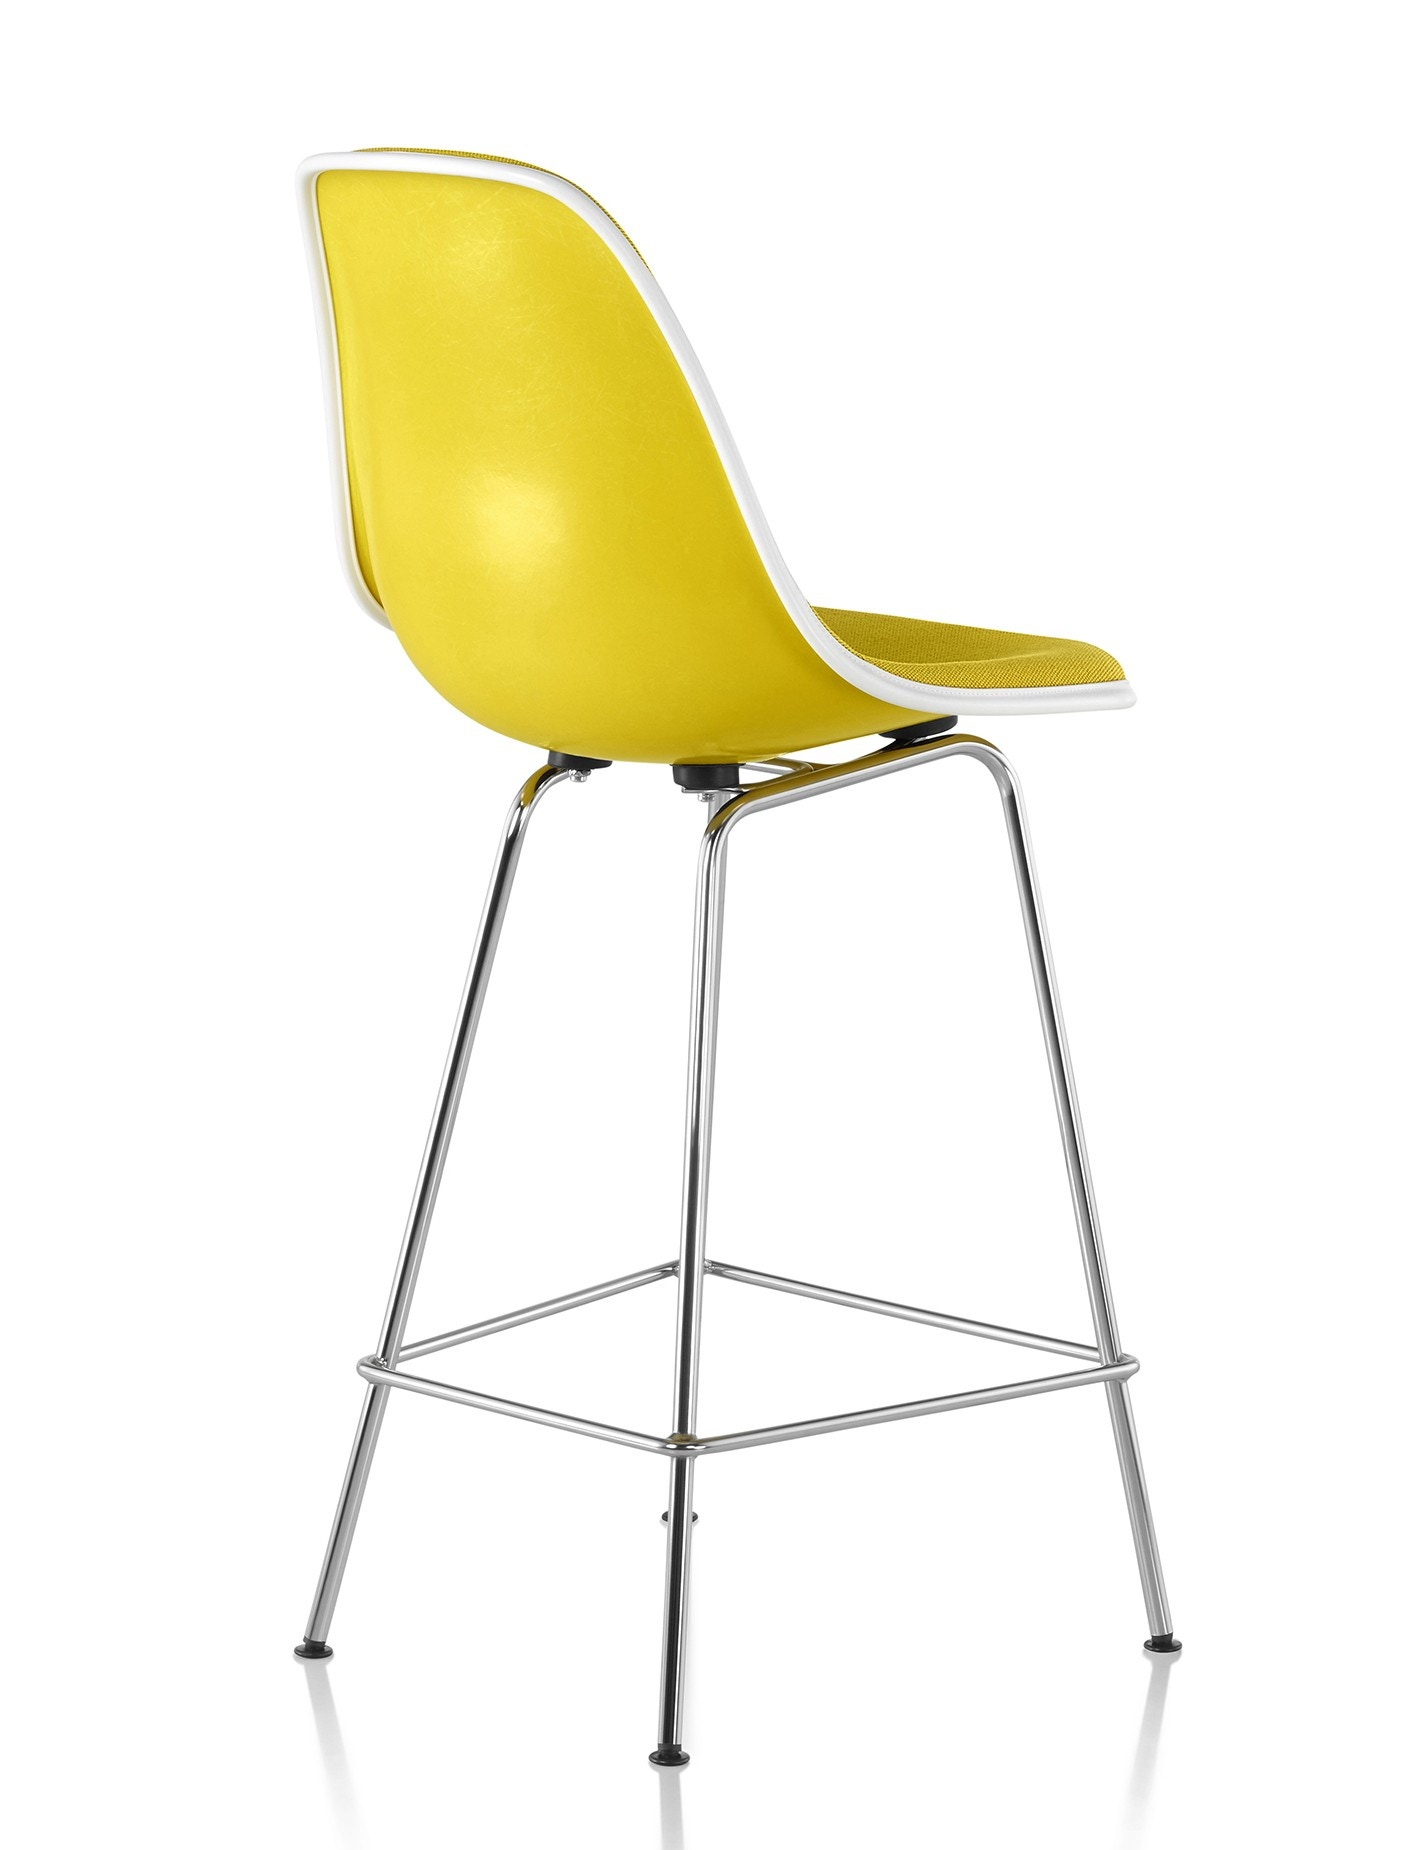 Herman Miller Eames174 Molded Fiberglass Stool Upholstered  : cw201529846 from grshop.com size 1420 x 1850 jpeg 116kB